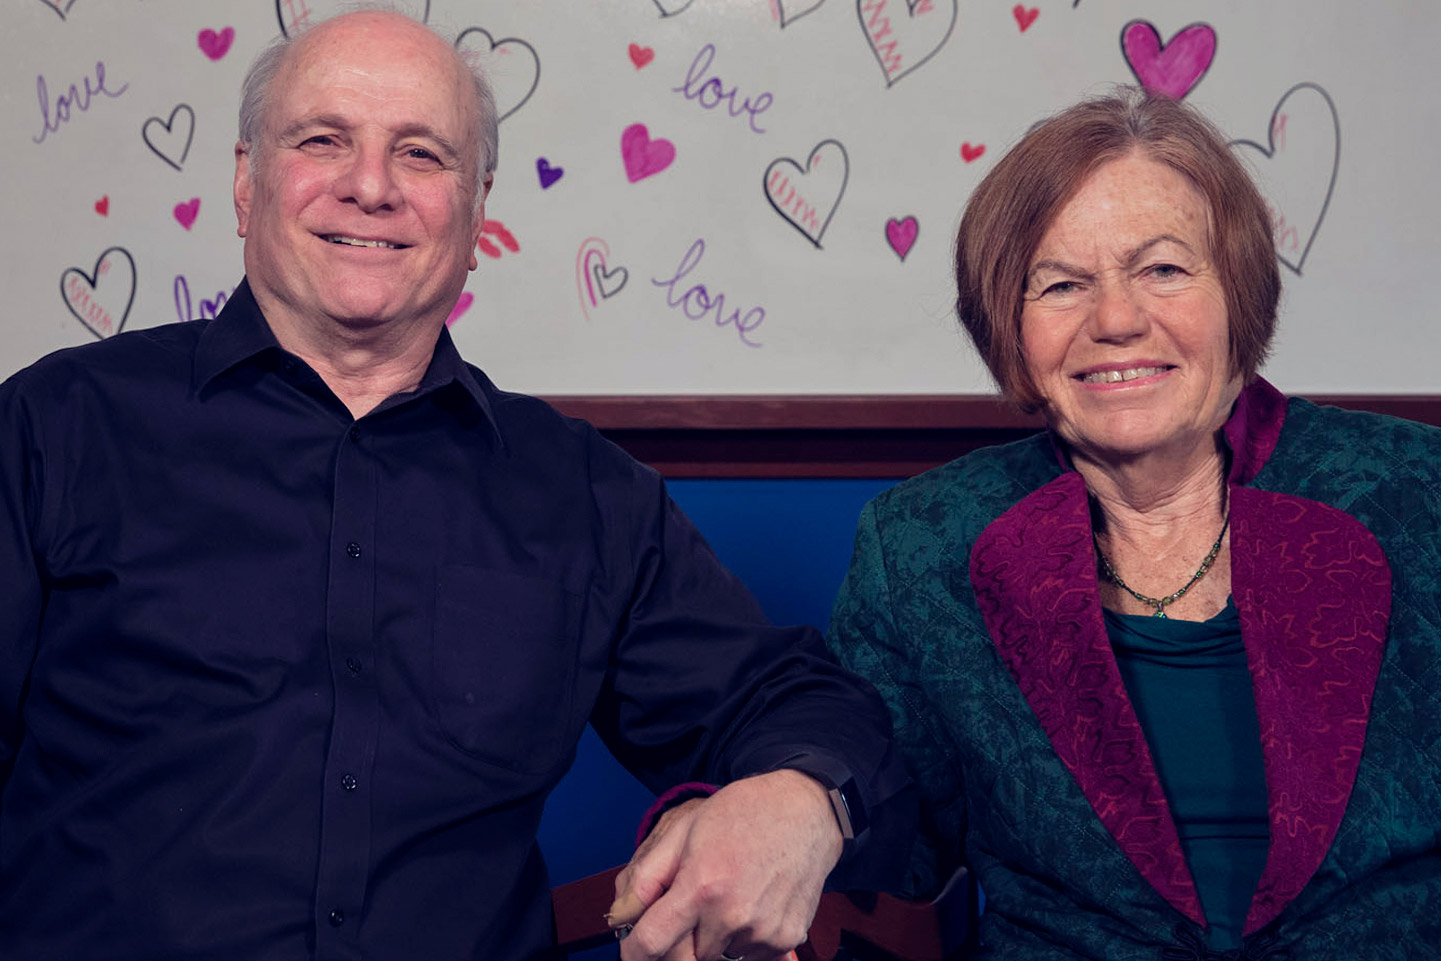 Psychologists (and marriage counselors Peter and Phyllis Sheras offered relationship advice Monday on UVA Today's Facebook Live.